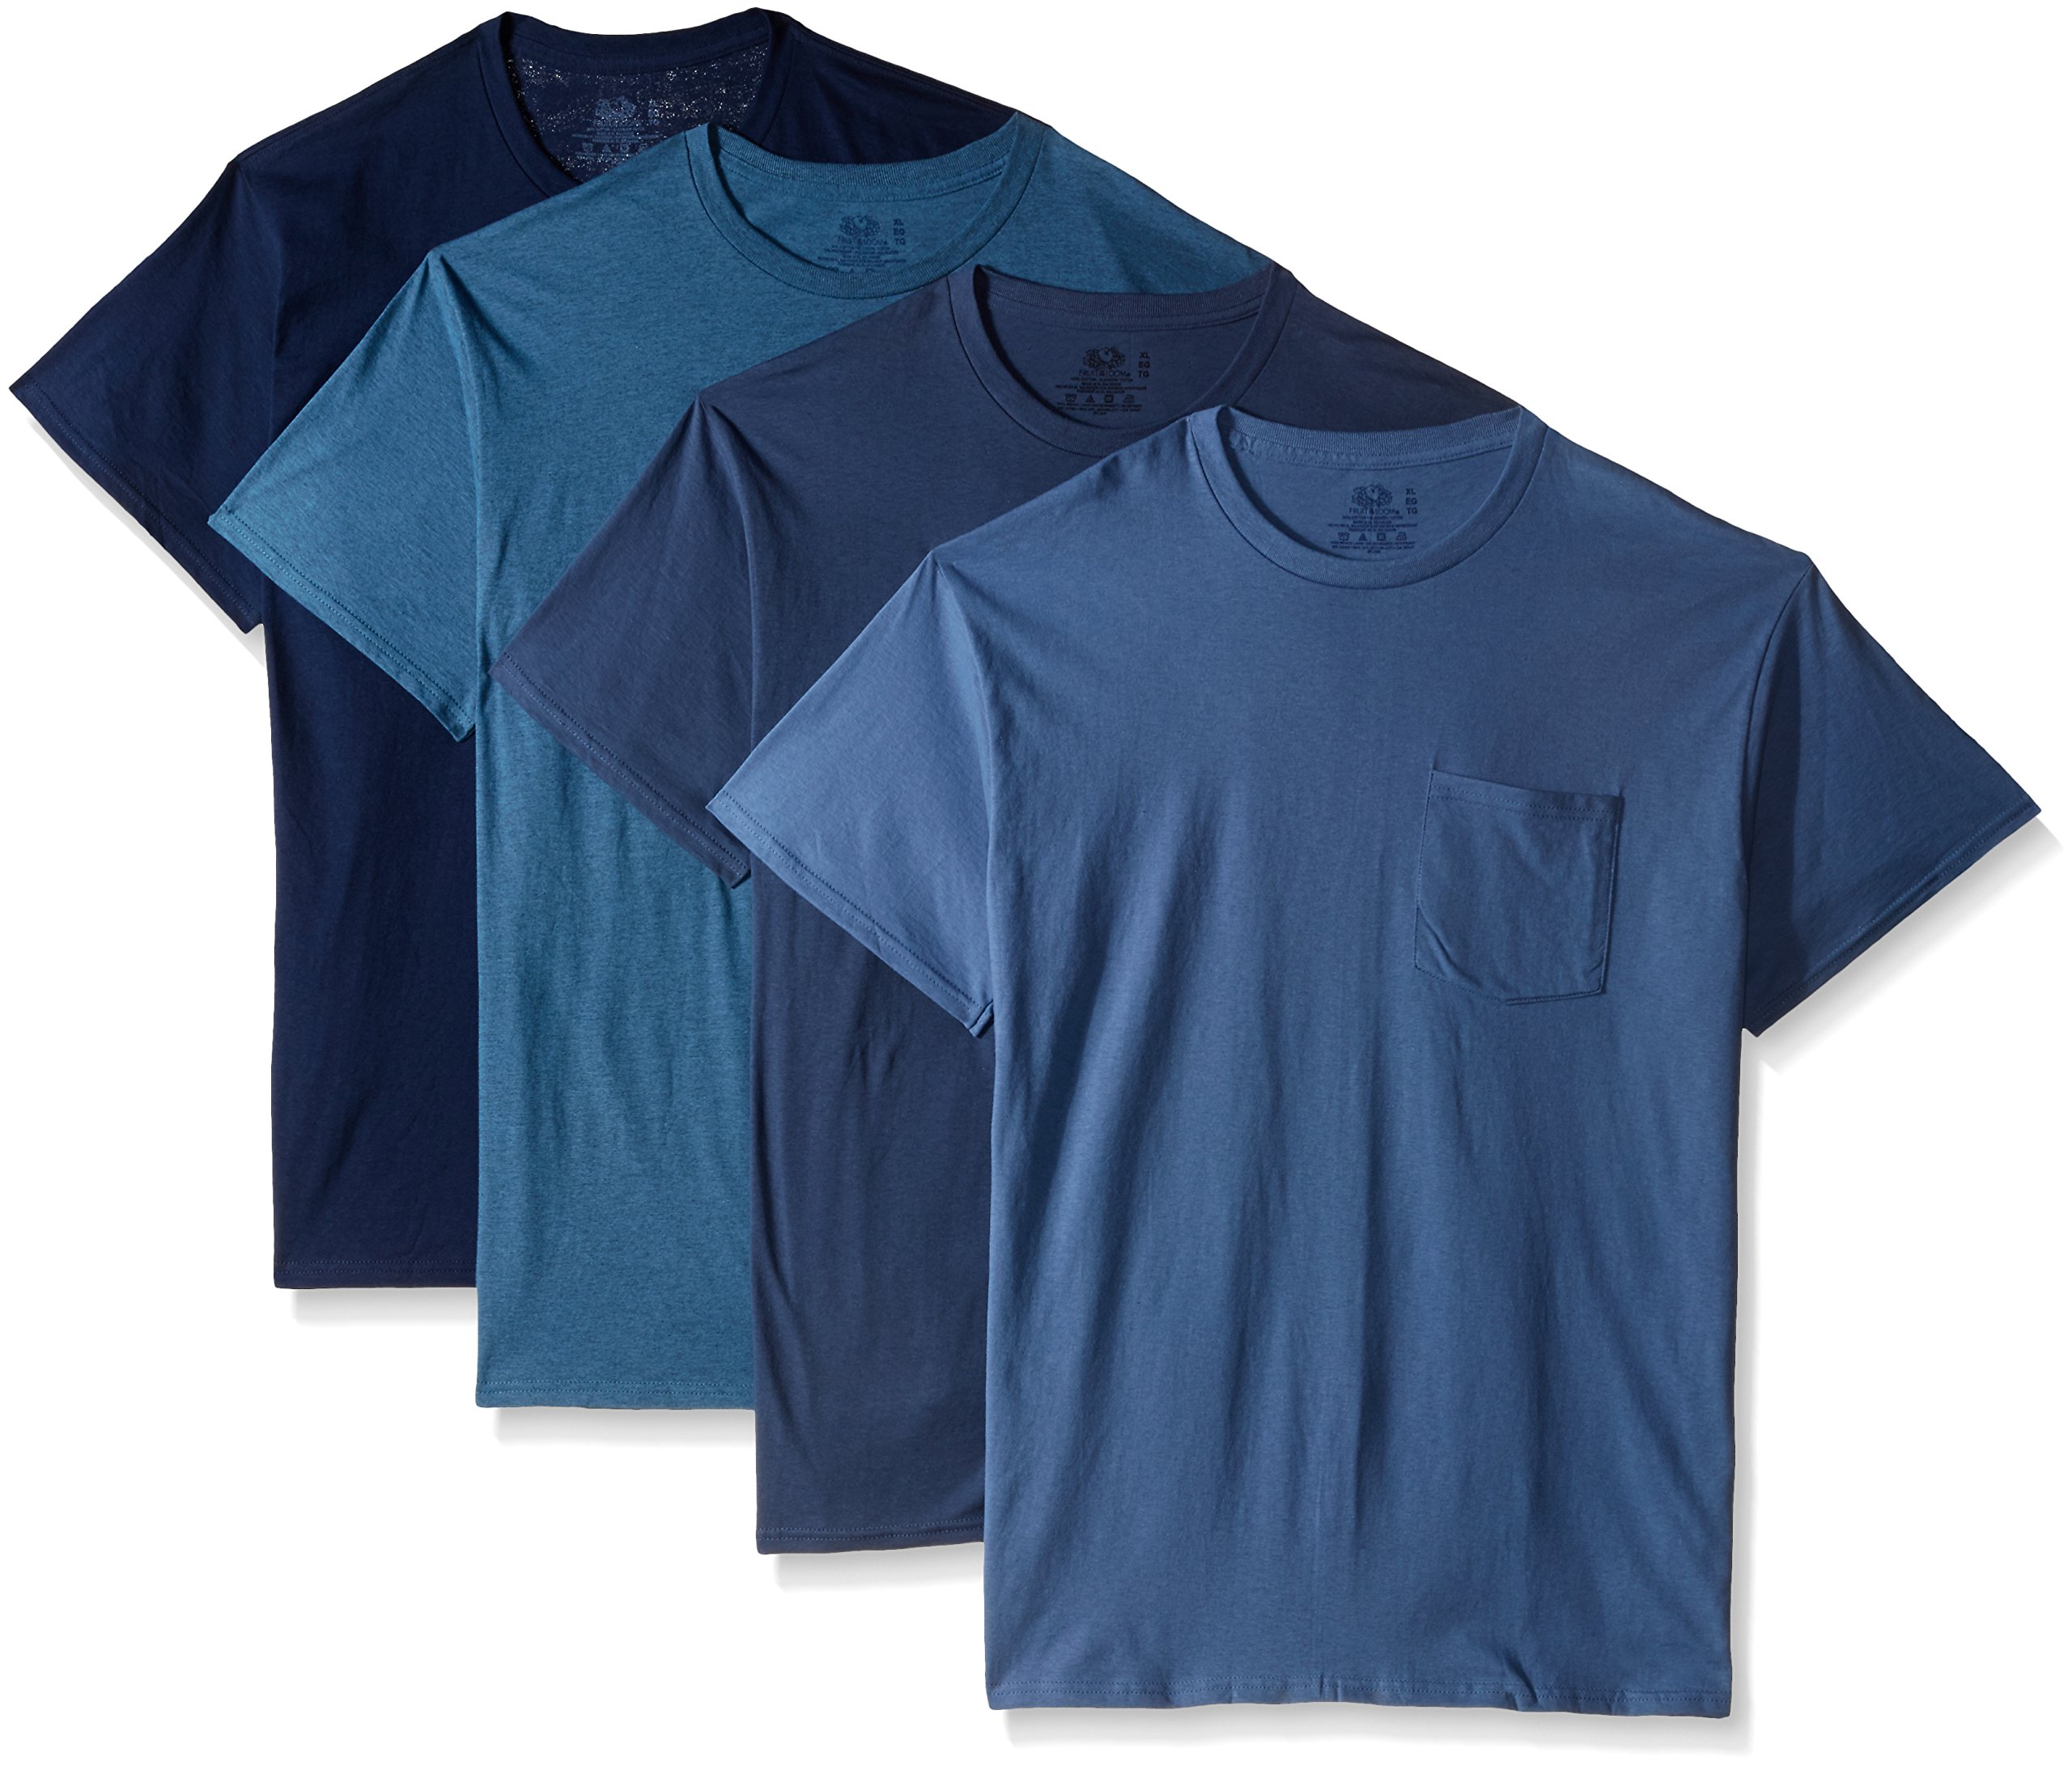 Fruit of the Loom Men's  Pocket Crew Neck T-Shirt (Pack of 4), Assorted Blues, Large by Fruit of the Loom